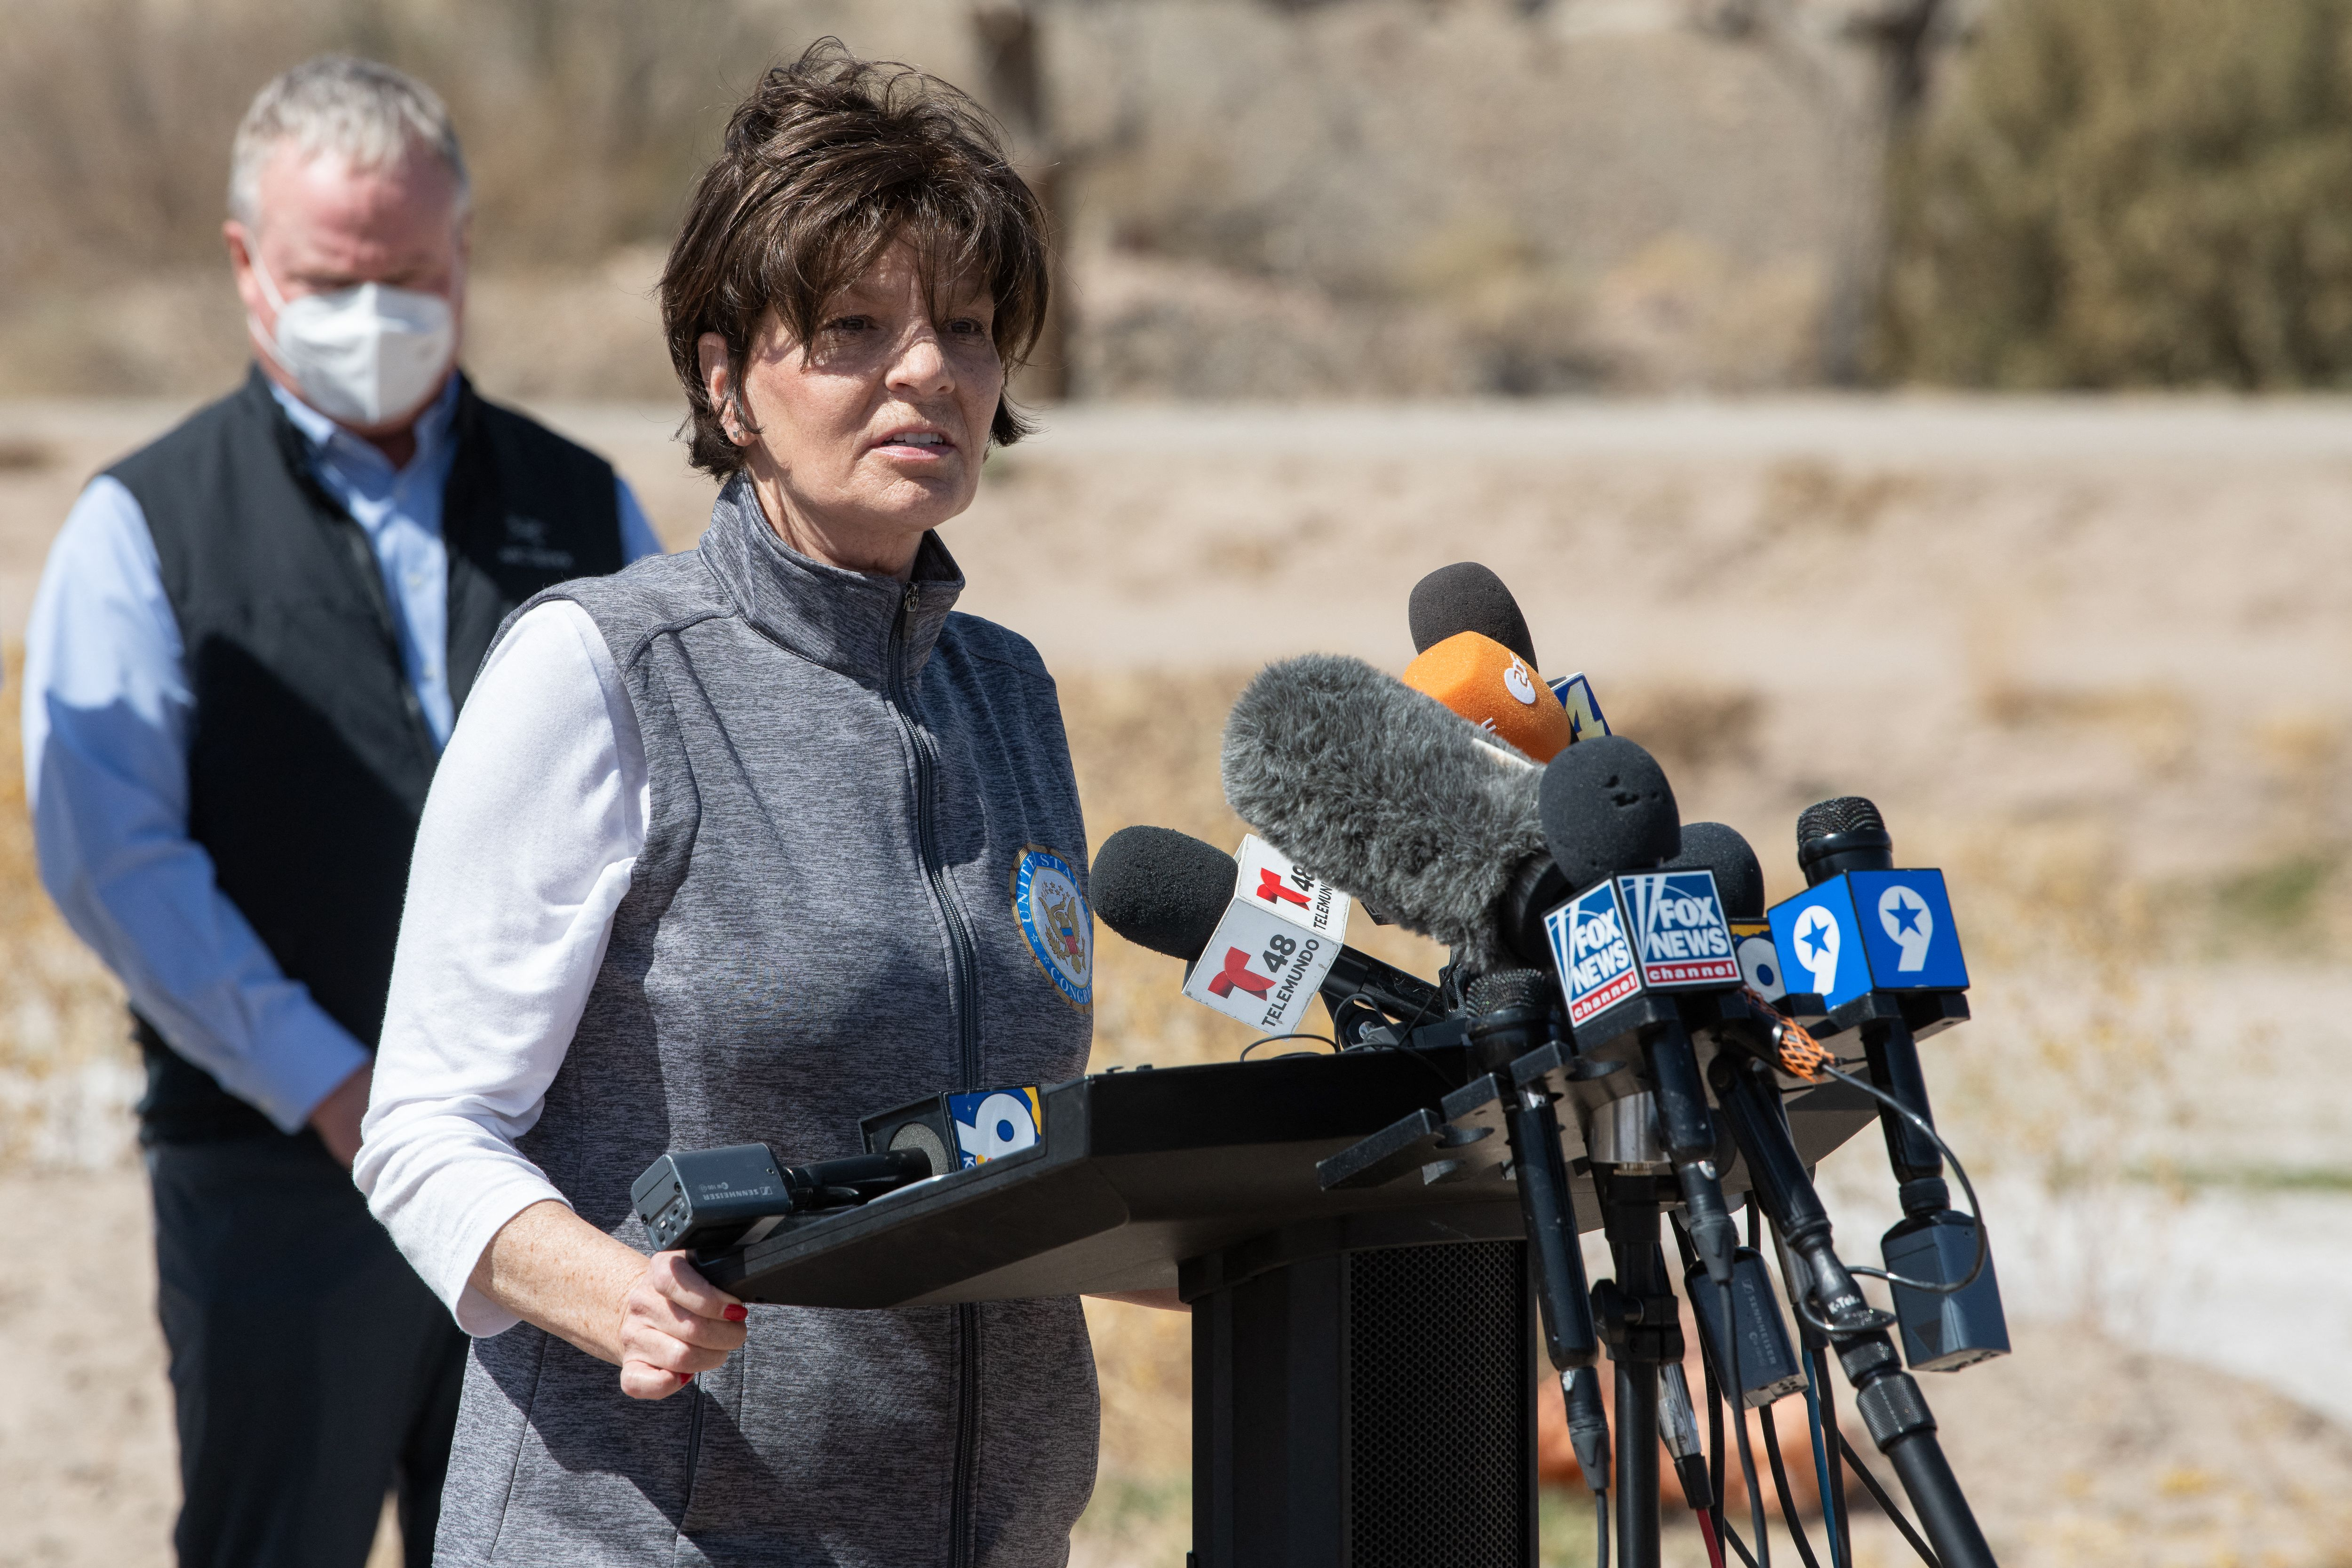 Rep. Yvette Herrell (R-N.M.) addresses the press during the congressional border delegation visit to El Paso, Texas. (Photo by JUSTIN HAMEL/AFP via Getty Images)